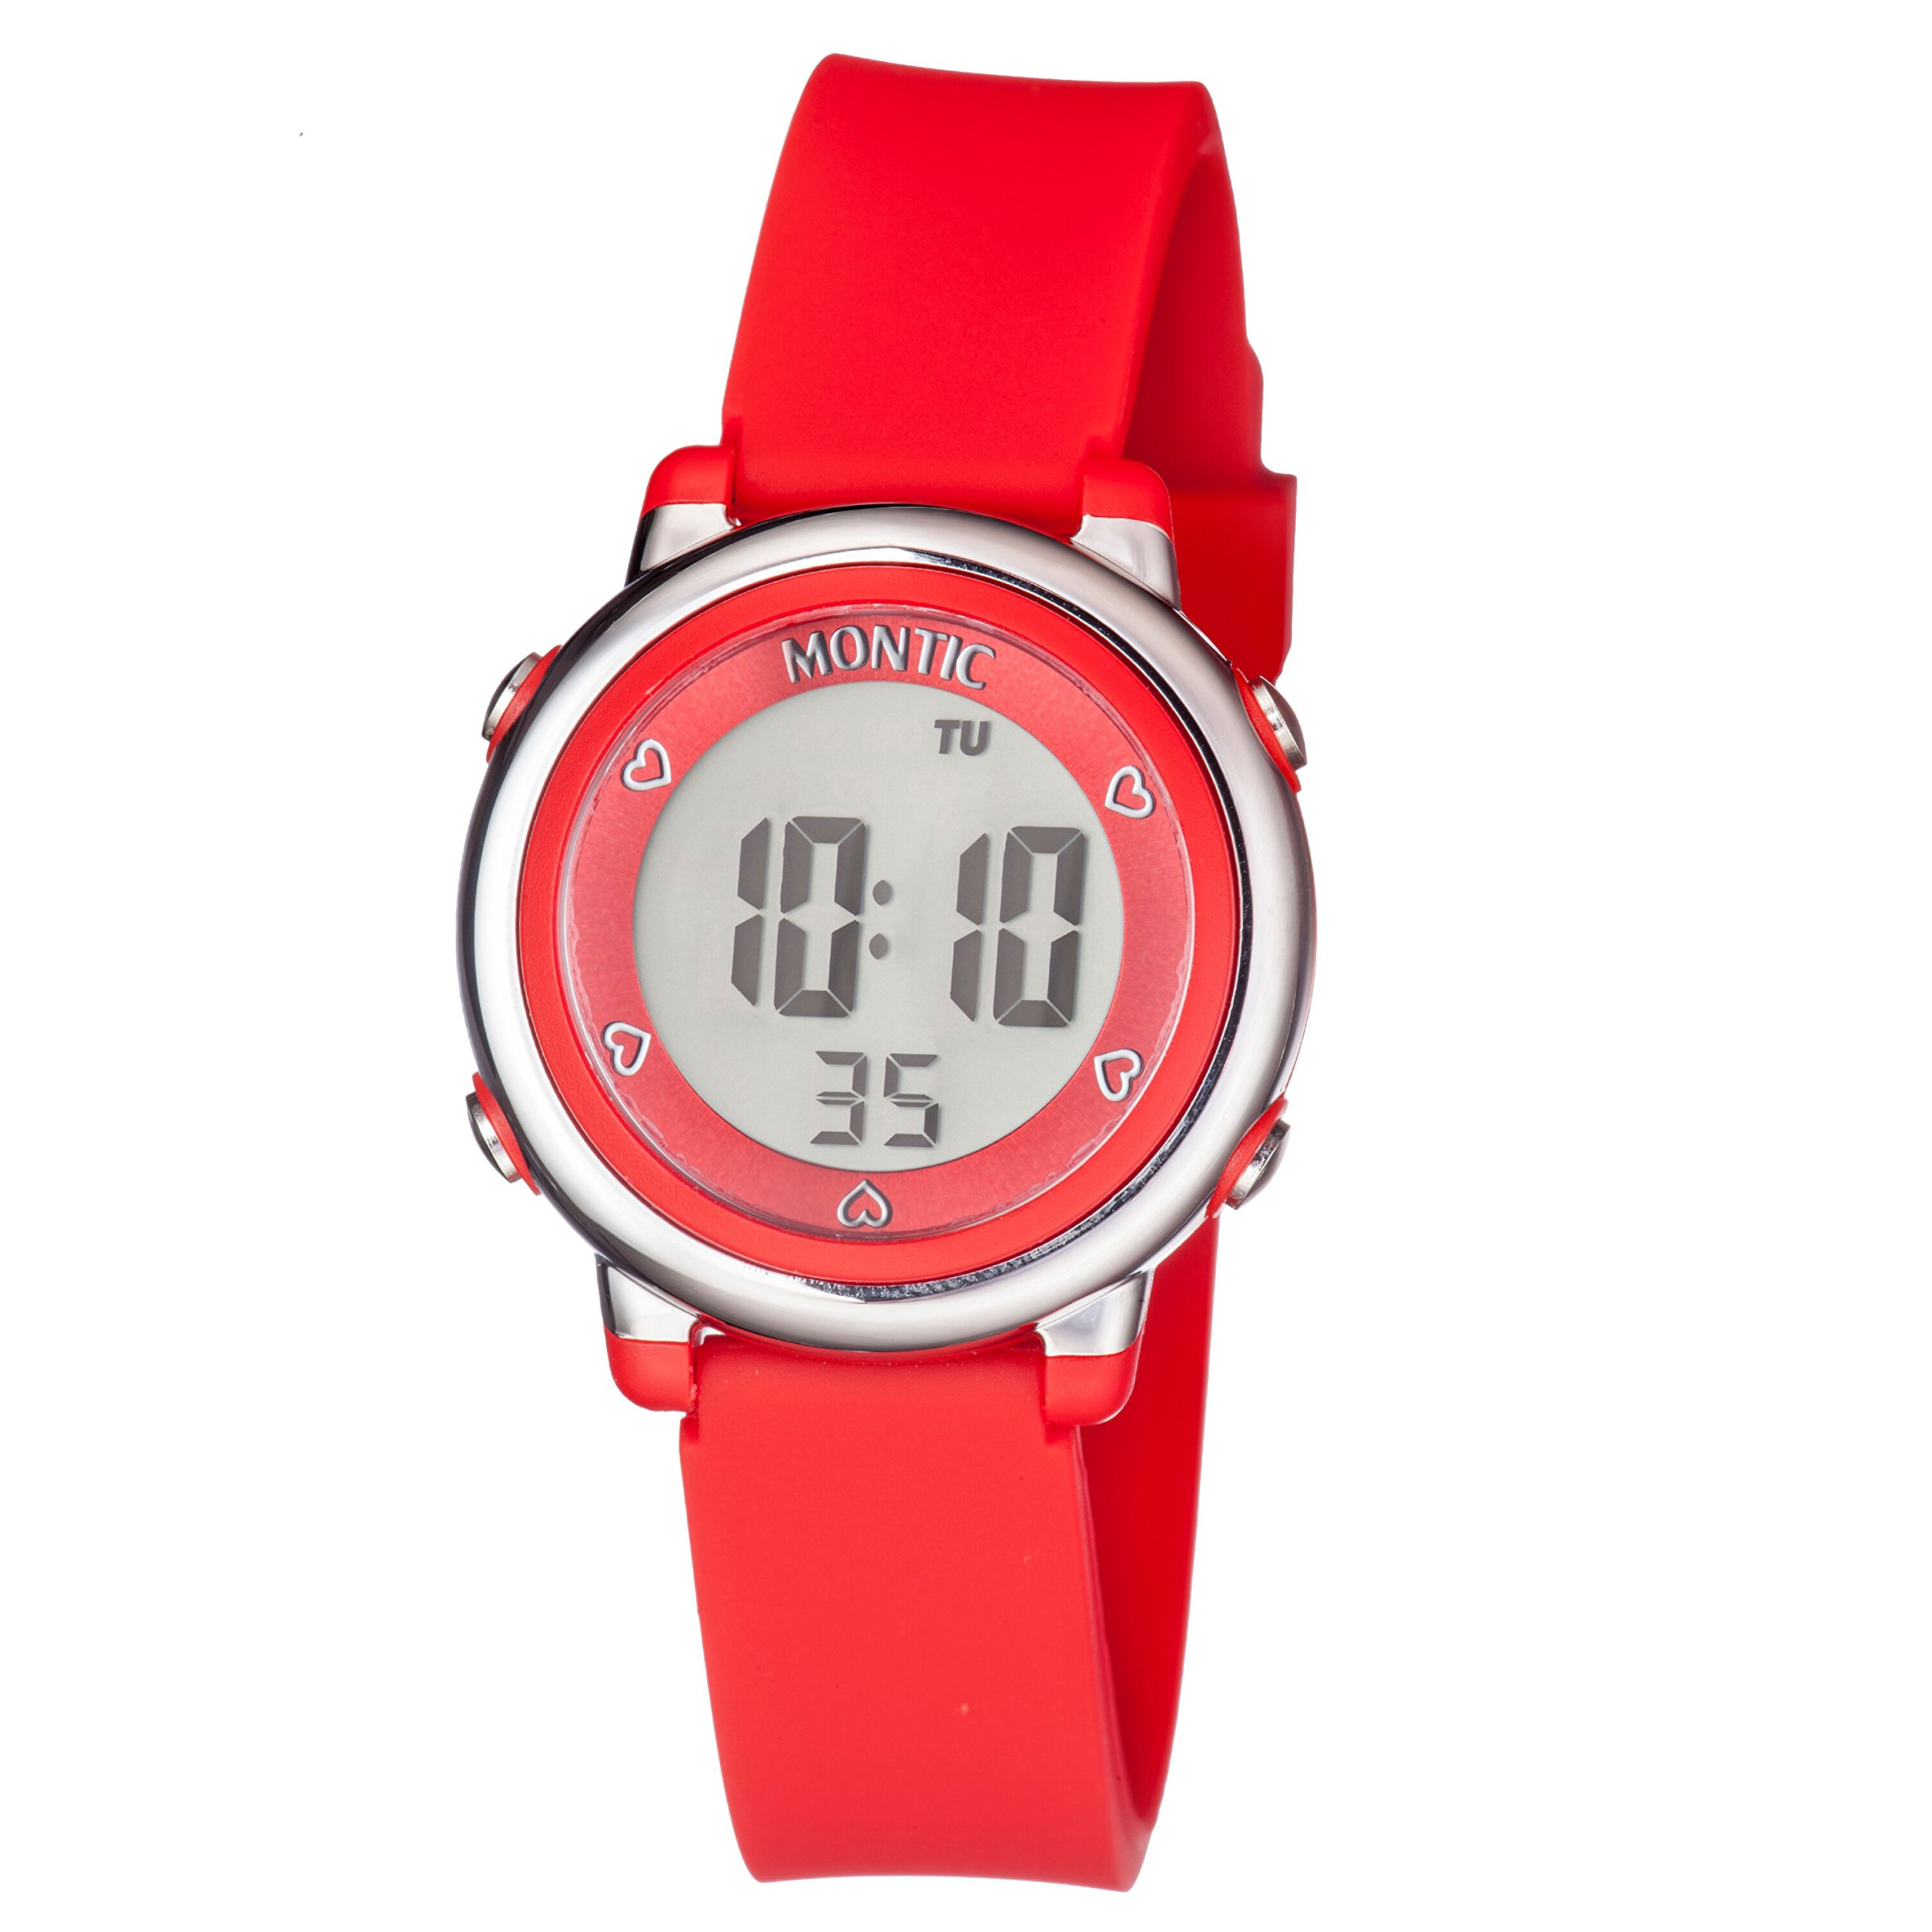 Montic Kids Red Digital Sports Multi Function Watch with Alarm and Stopwatch Functions